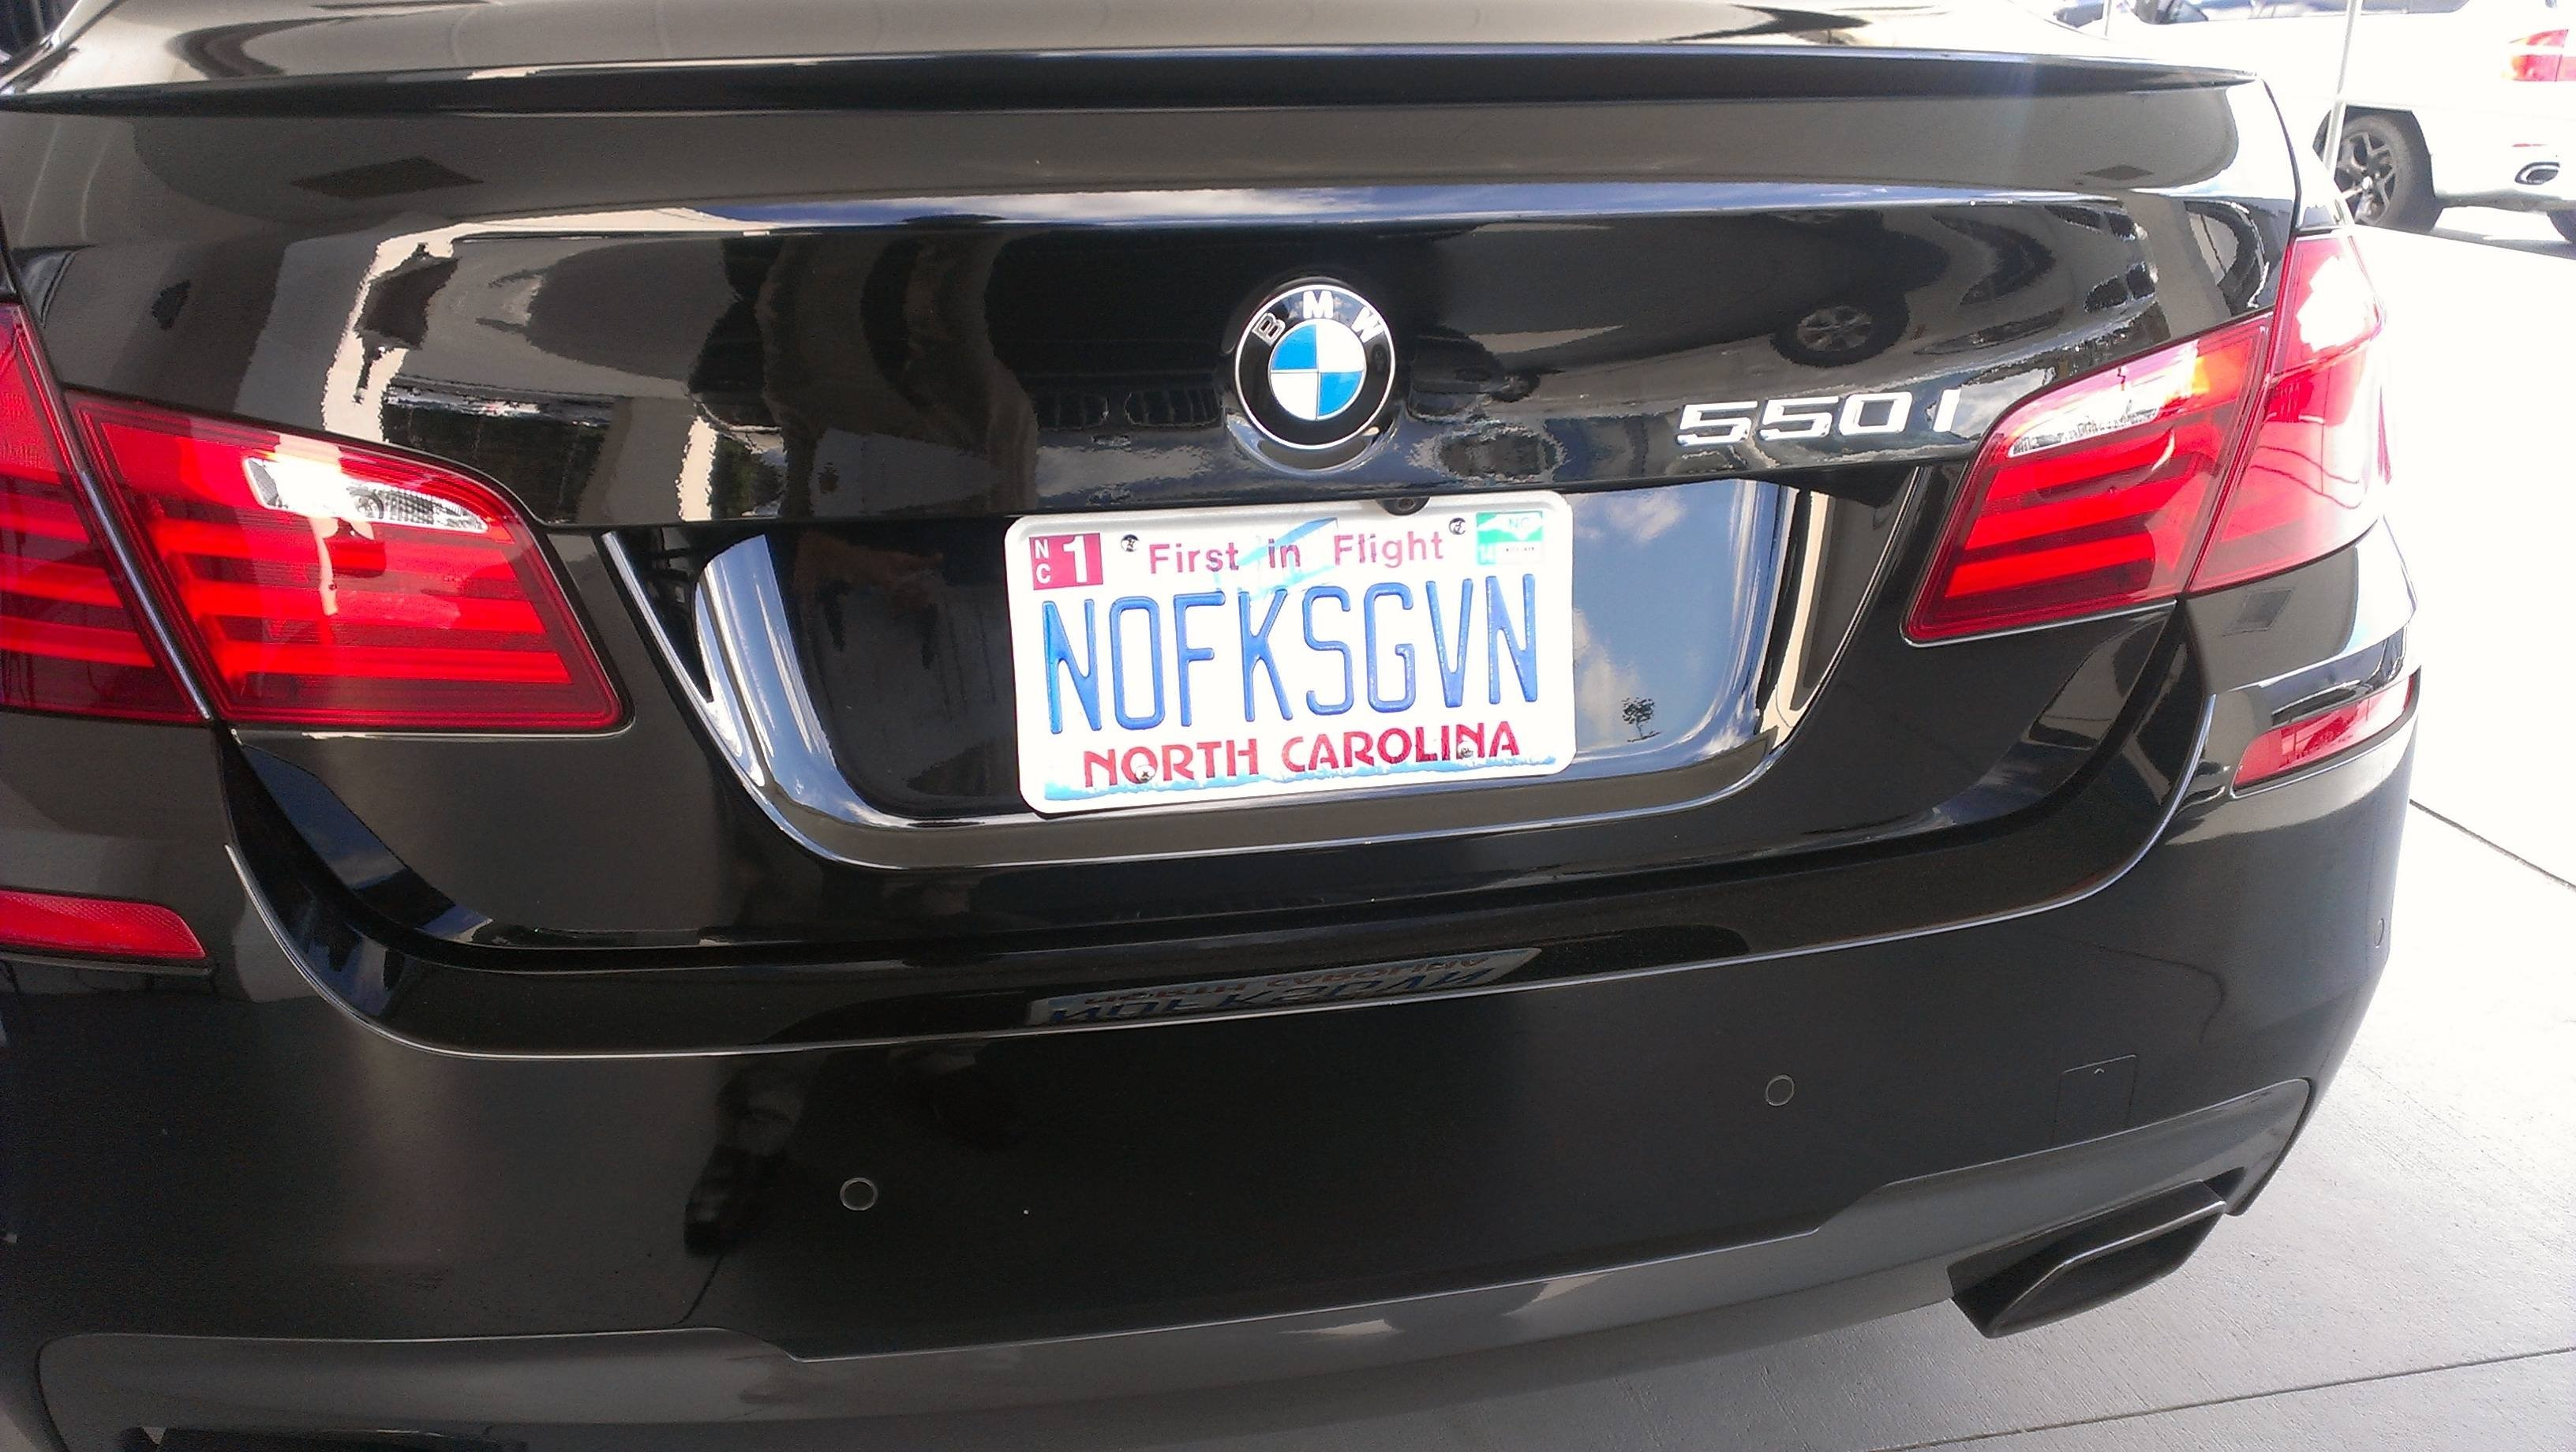 10 Most Popular License Plate Ideas For Girls 25 insanely clever license plates you wish youd thought of complex 2021